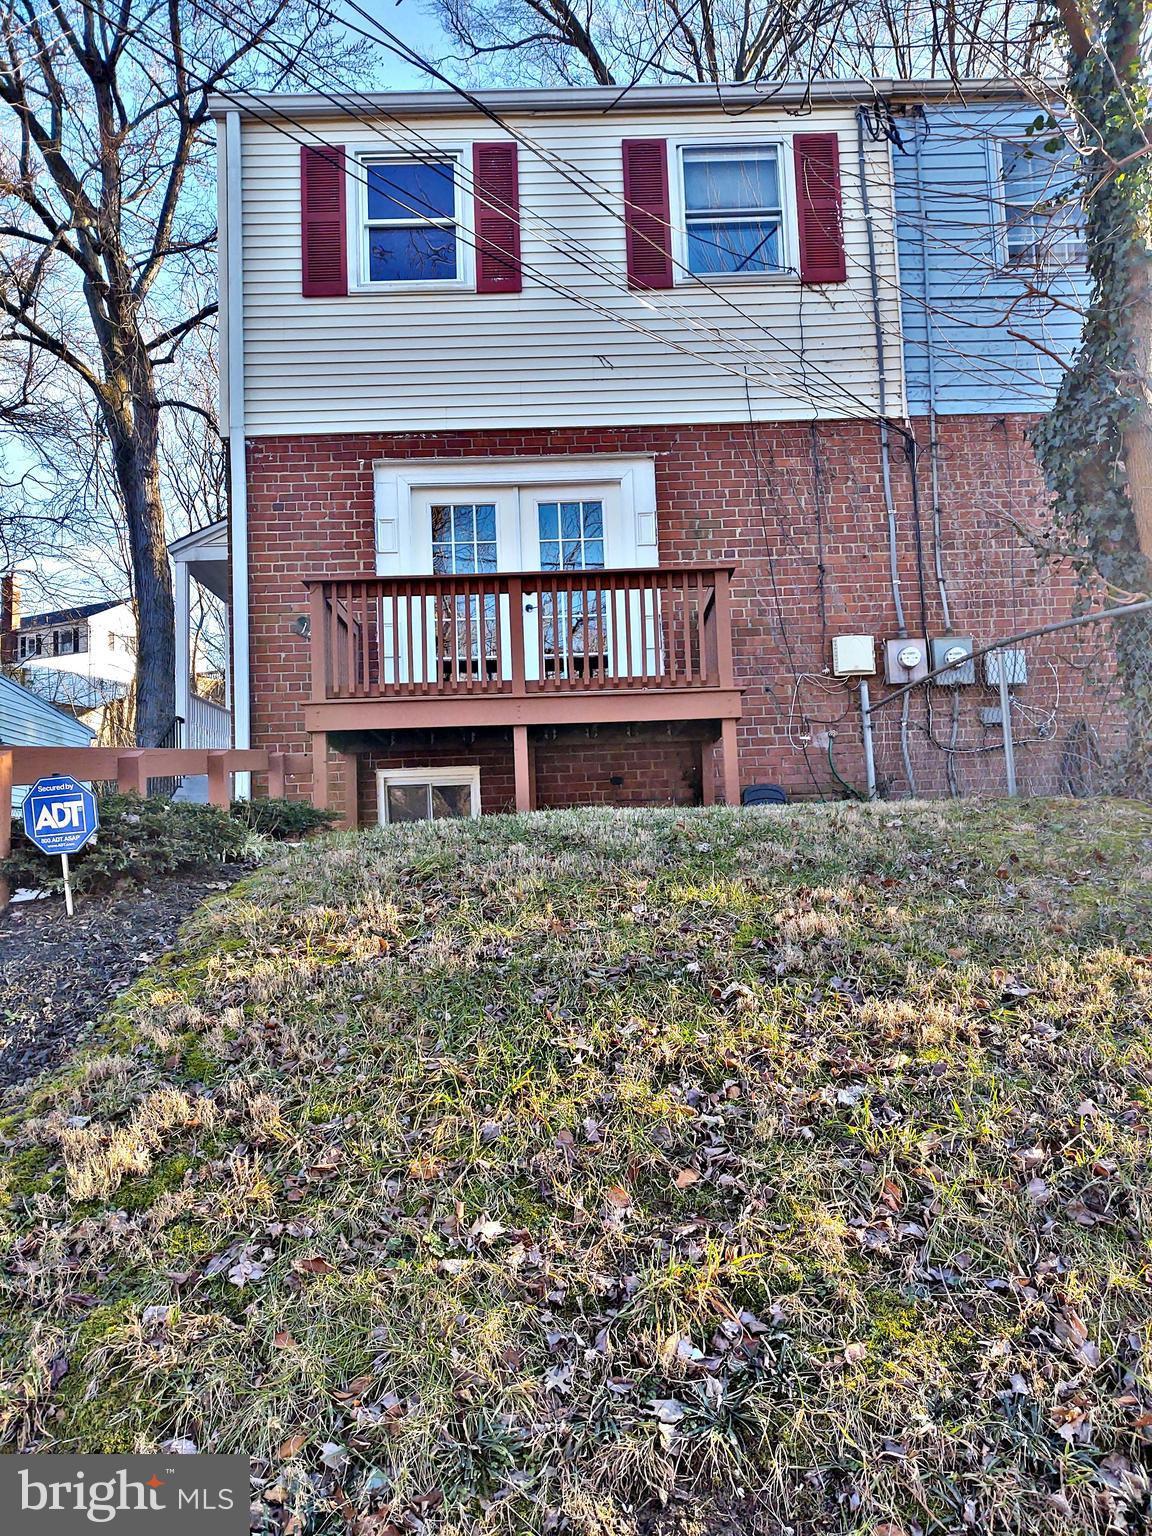 4 bedroom, 2.5 bath duplex in Conn Ave Estates. Front and rear decks and side porch with the main en